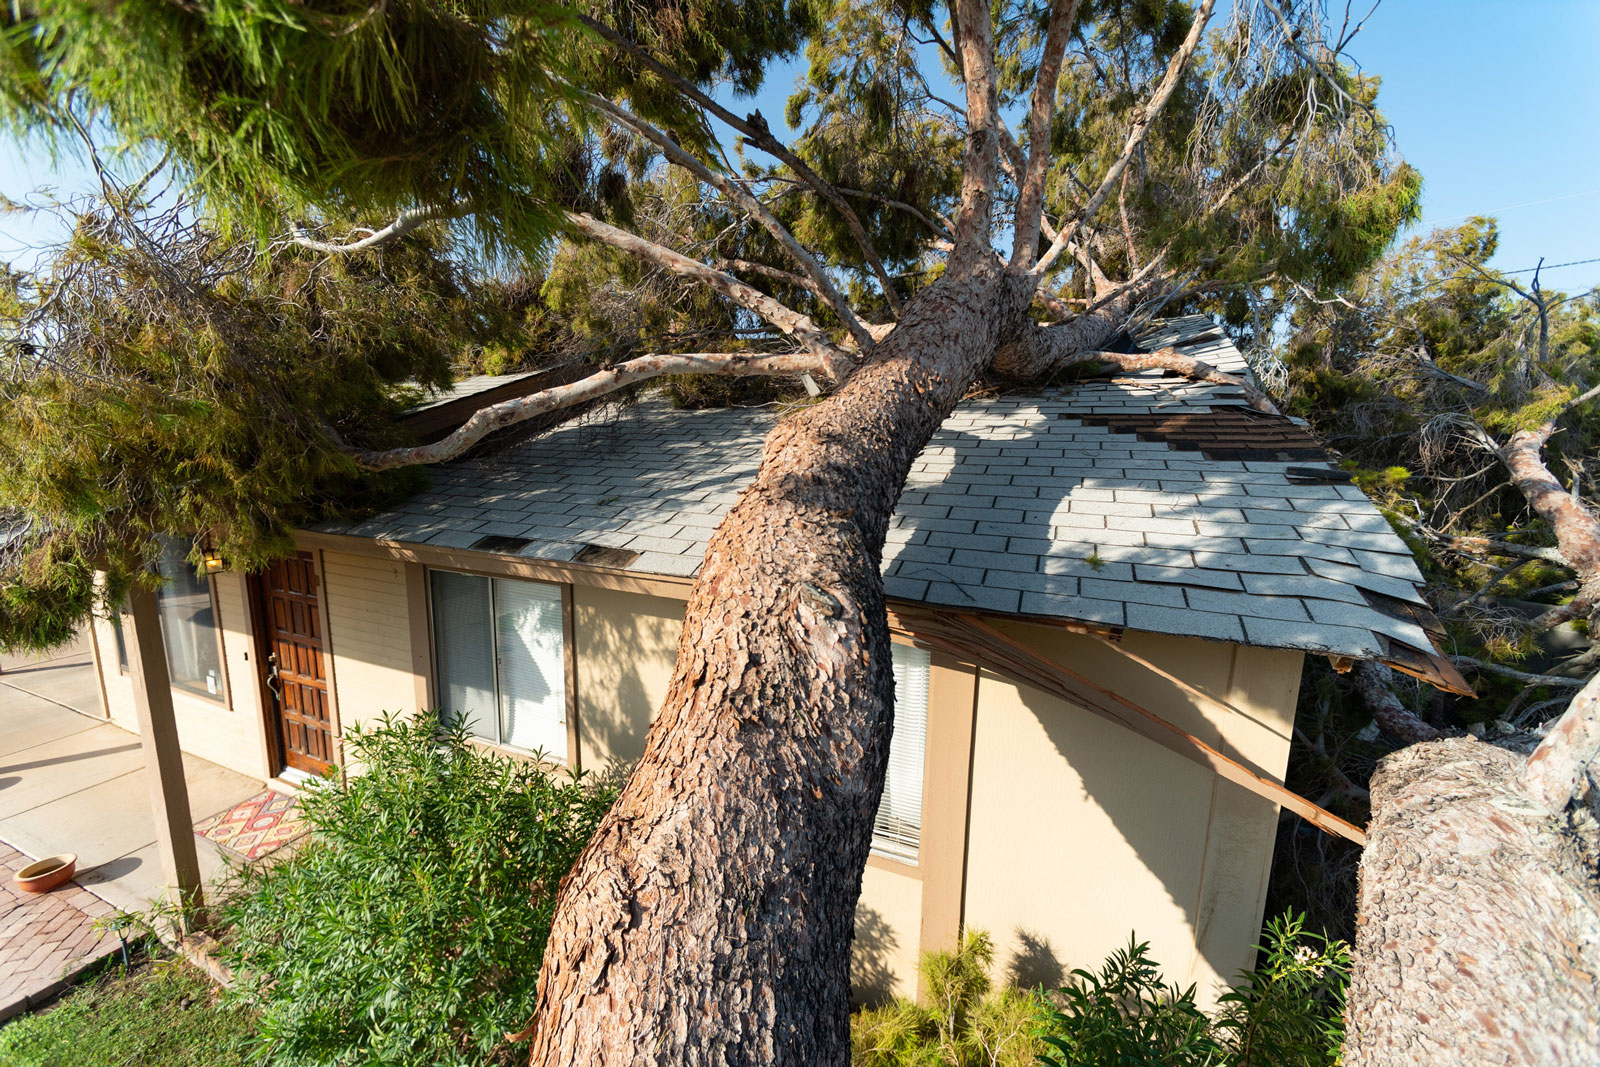 Large tree fallen on roof of house